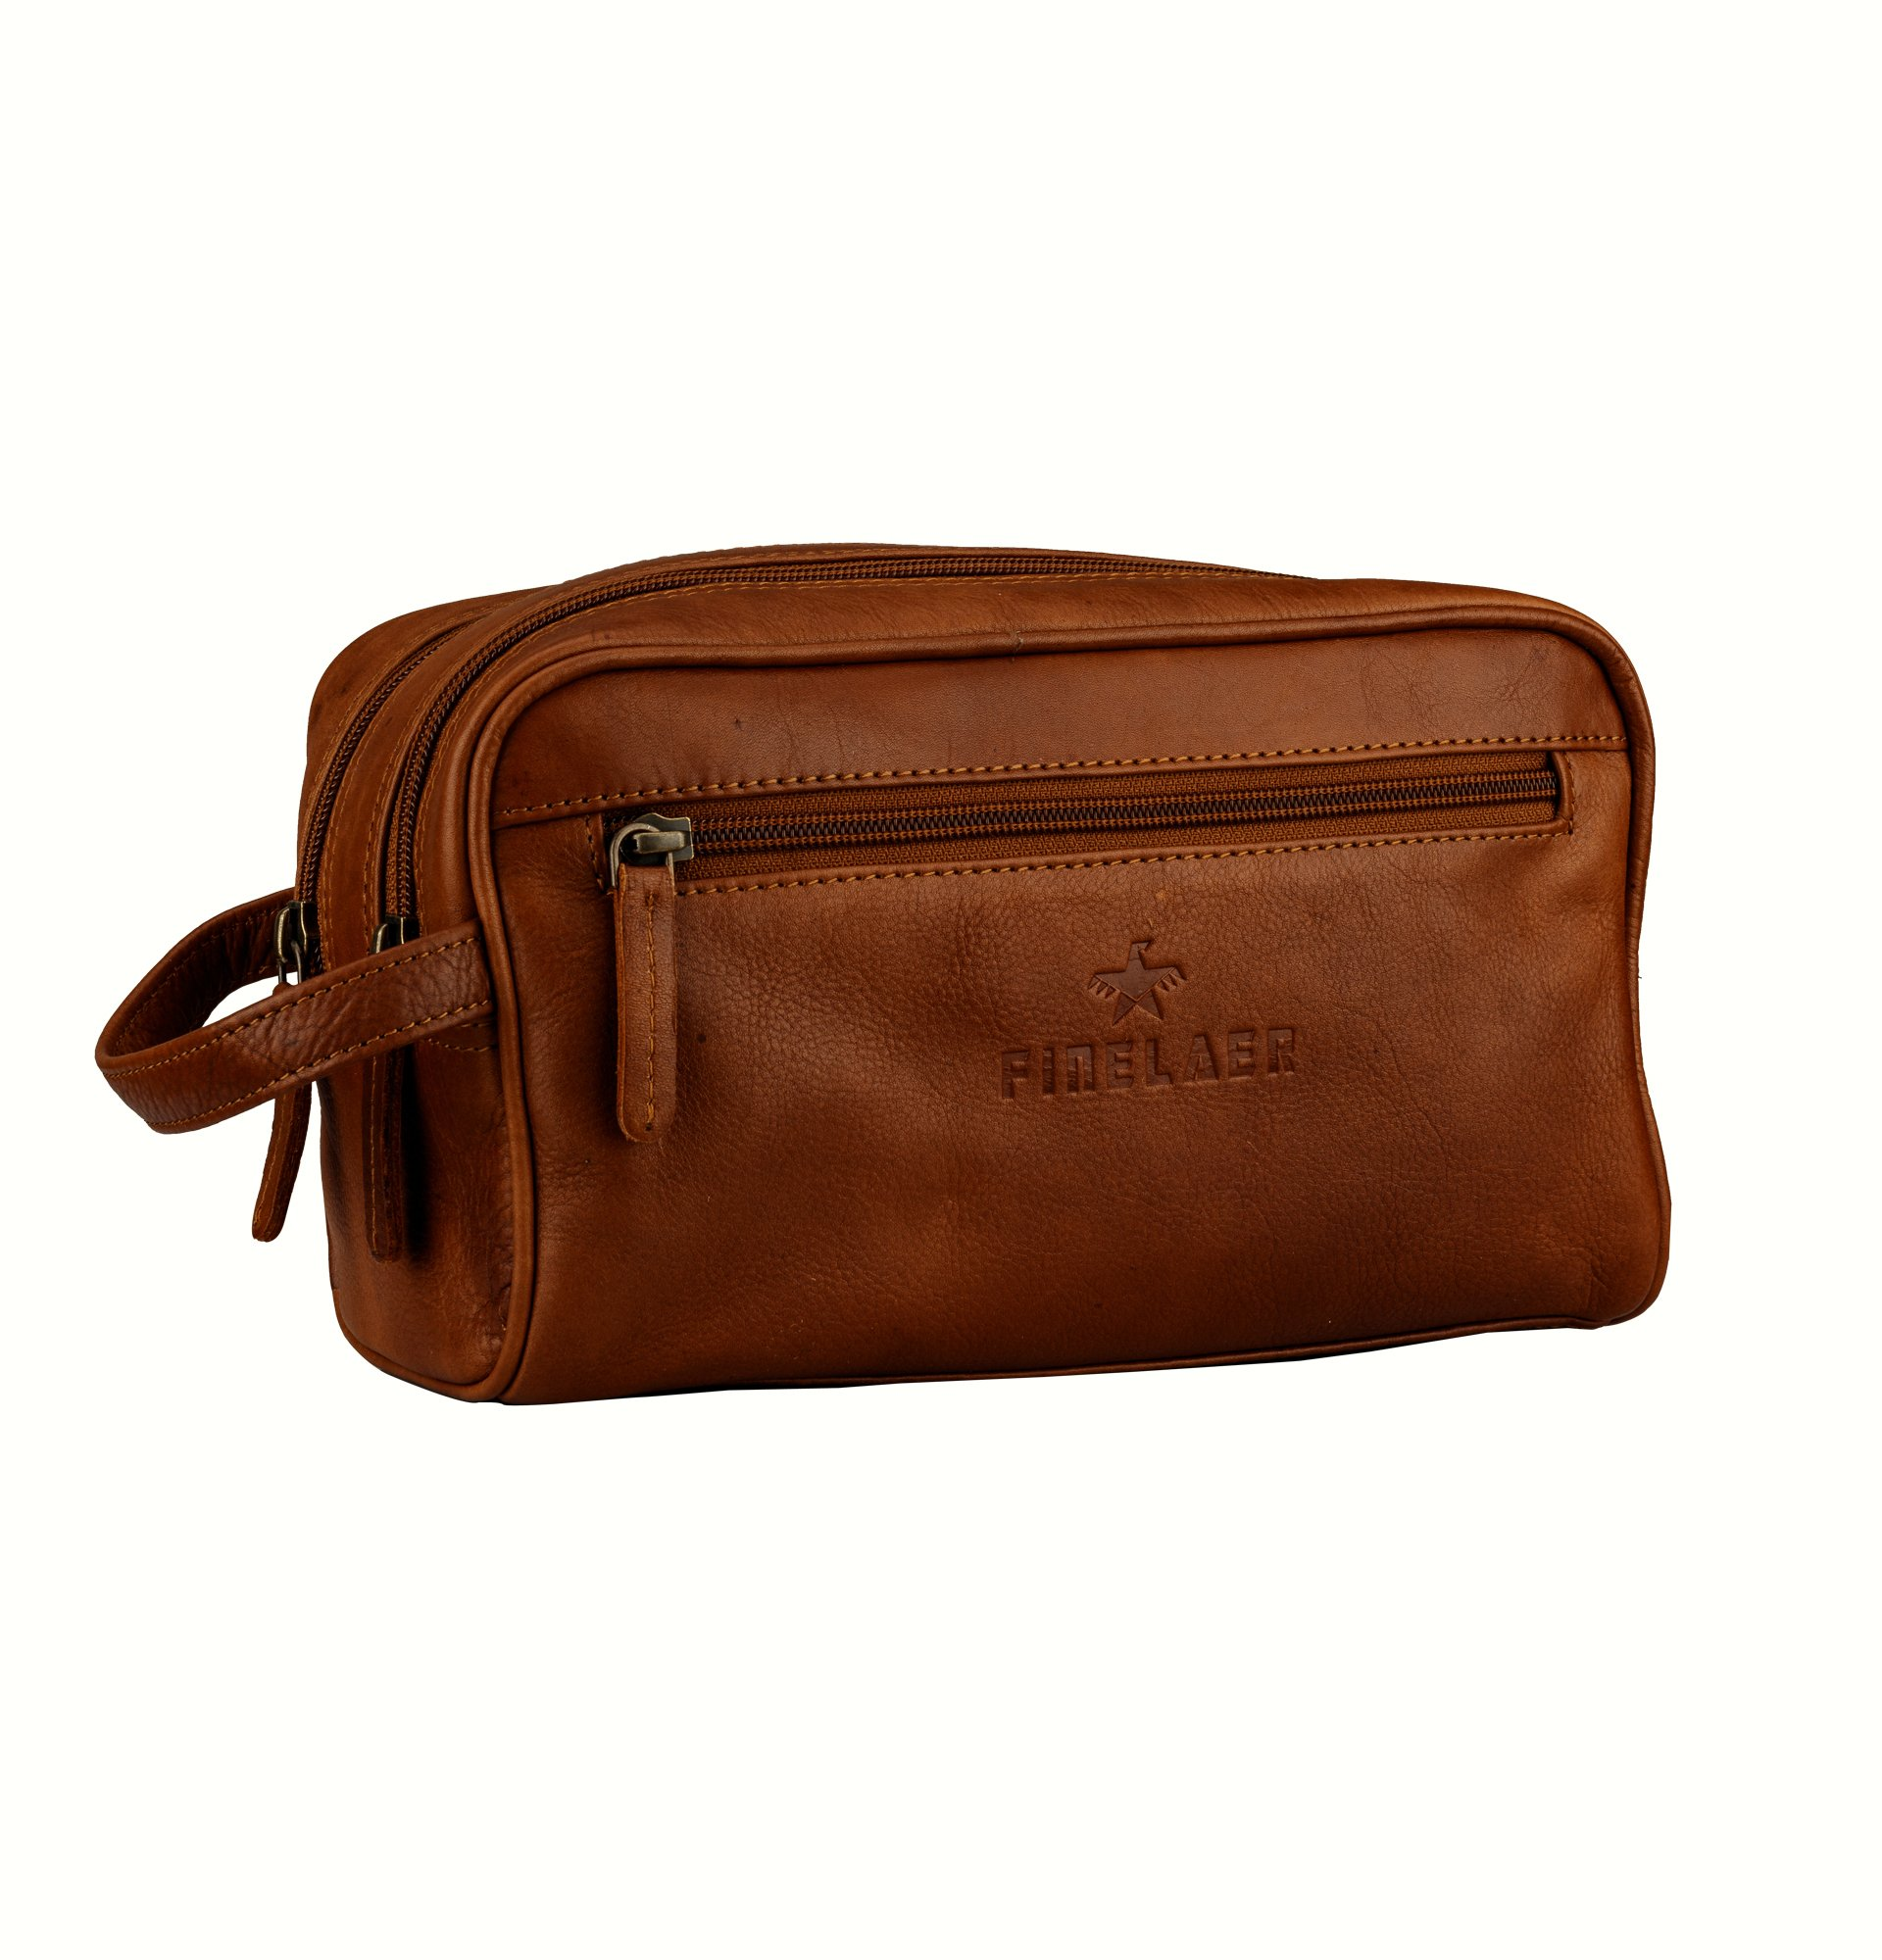 Finelaer Men Brown Leather Toiletry Travel Dopp Bag by FINELAER (Image #2)